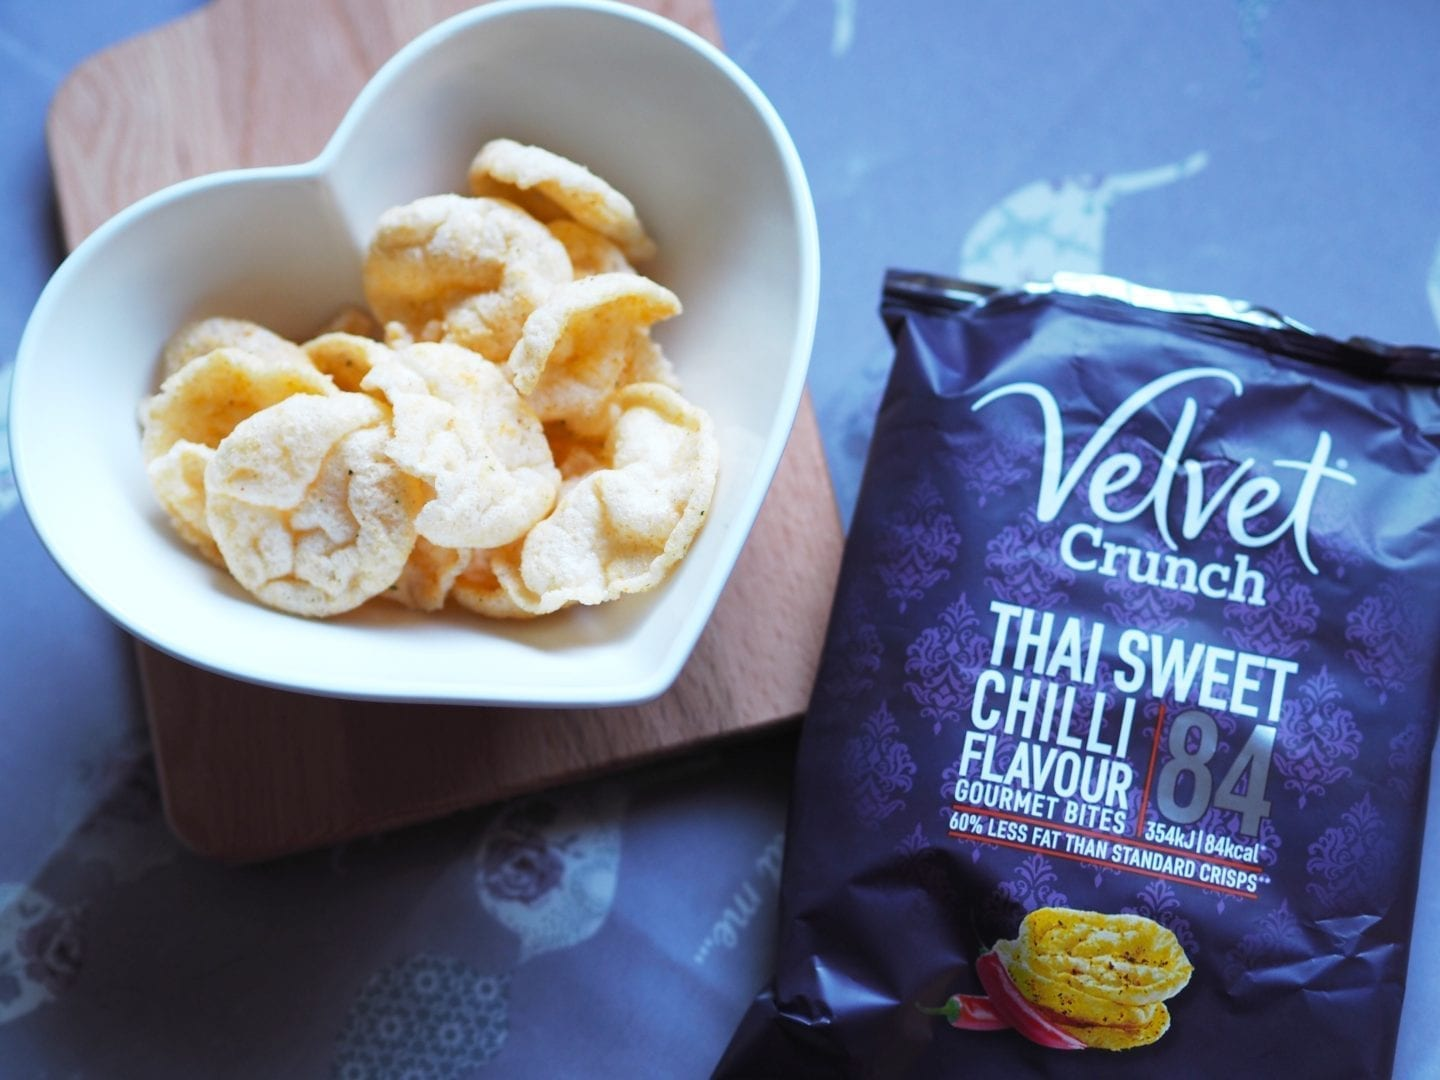 Thai Sweet Chilli Velvet Crunch